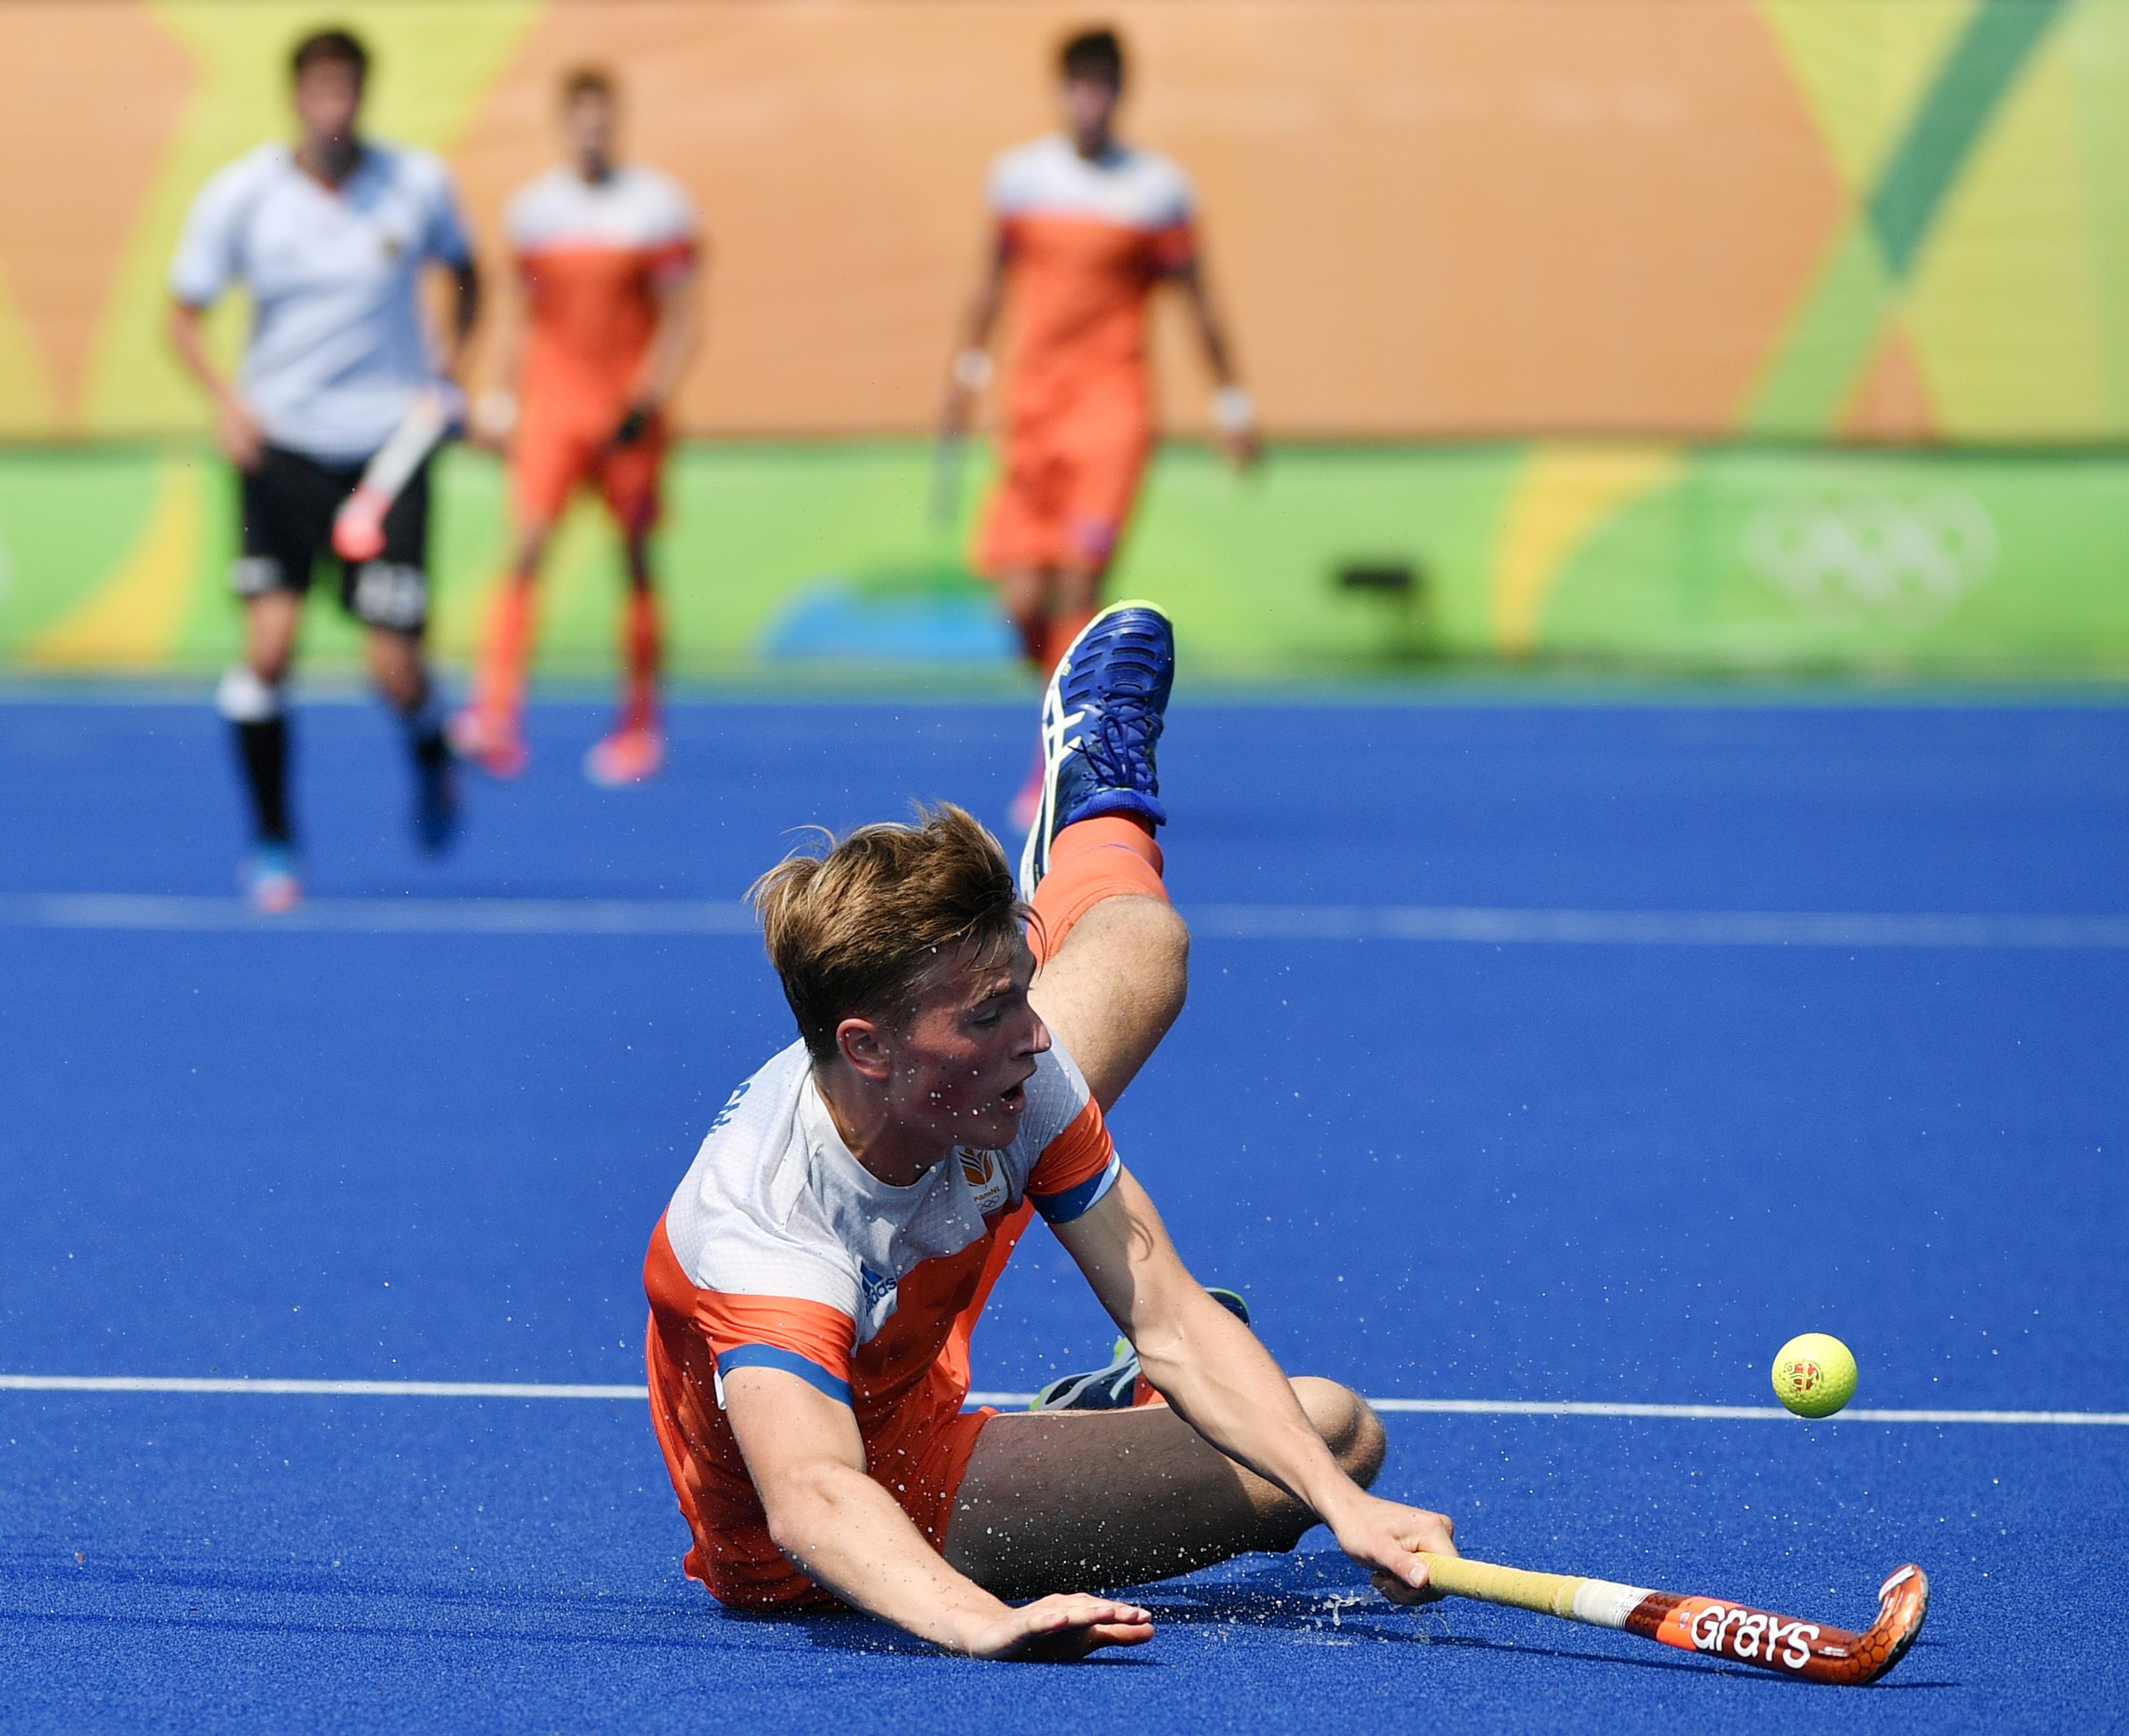 Netherlands' Jorrit Croon falls down during the men's Bronze medal field hockey Netherlands vs Germany match of the Rio 2016 Olympics Games at the Olympic Hockey Centre in Rio de Janeiro on August 18, 2016. / AFP / Pascal GUYOT (Photo credit should read PASCAL GUYOT/AFP/Getty Images)